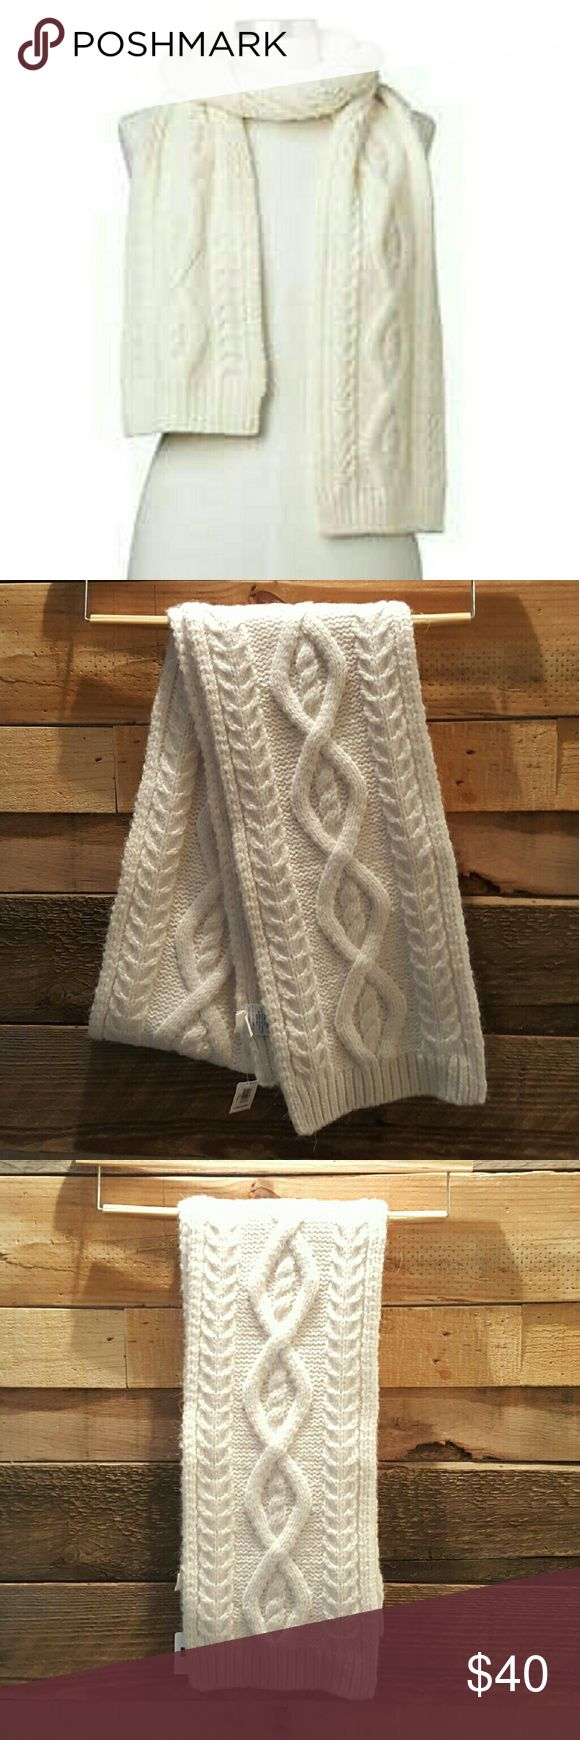 "🌟NWT GAP DIAMOND CABLE KNIT SCARF🌟 GAP BRAND NEW WITH TAGS DIAMOND CABLE KNIT SCARF COLOR SNOW CAP 76"" LONG X 8 1/4"" WIDE SOFT & COZY & THICK BEAUTIFULLY CONSTRUCTED RIBBED AT HEMS BEAUTIFUL CREAM NUETRAL COLOR GOES WITH EVERYTHING! 65% ACRYLIC, 20% WOOL,6% NYLON, 5% ALPACA, 4% POLYESTER *NO TRADES NO RETURNS* GAP Accessories Scarves & Wraps"